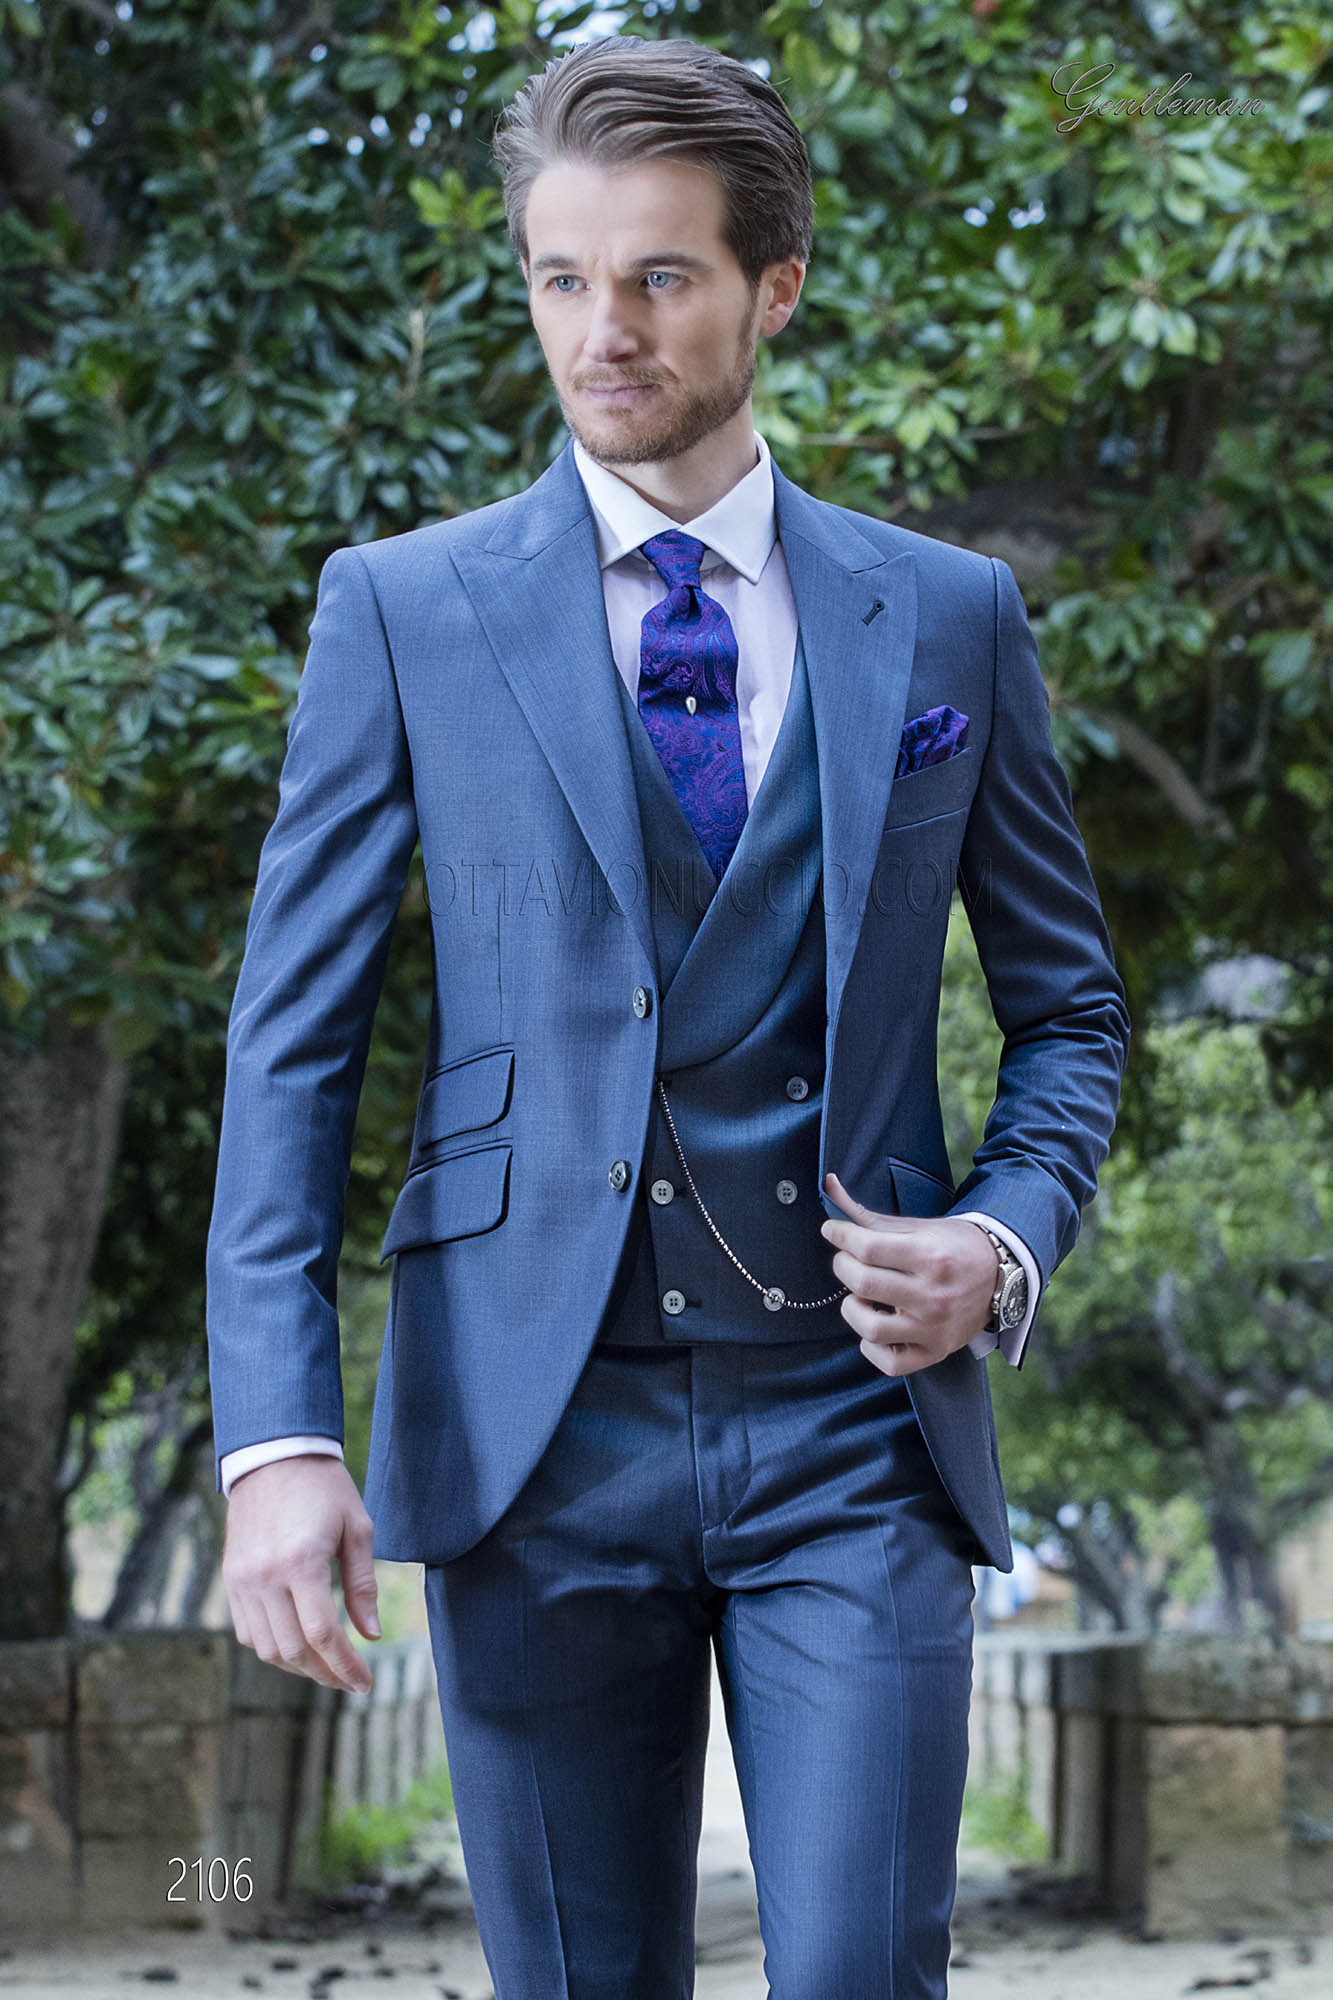 Perfect Italian Wedding Suits For Men Composition - All Wedding ...